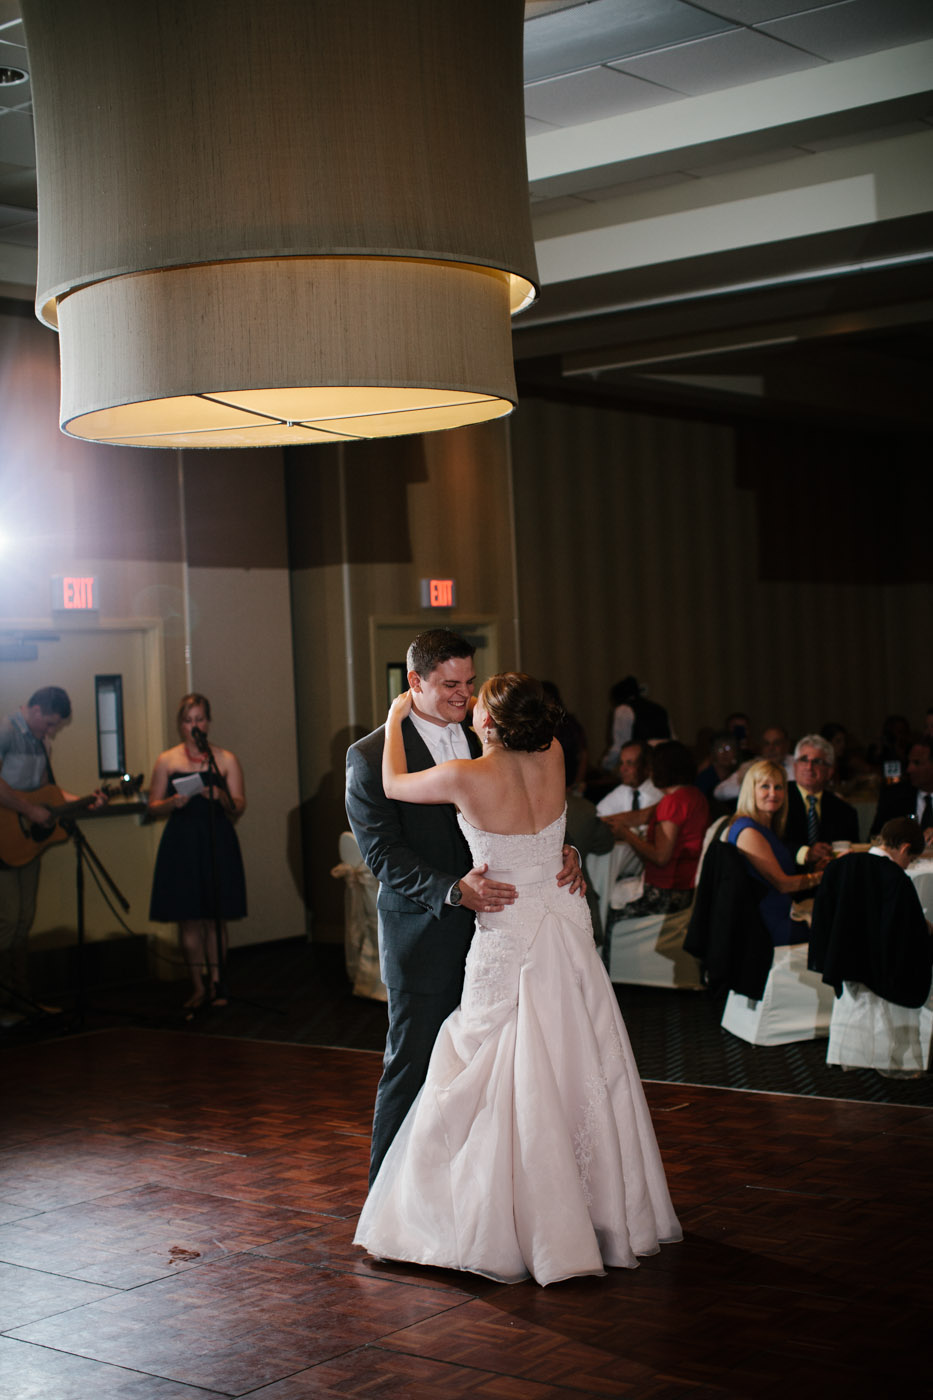 St-Louis-Wedding-Photography-1038.jpg